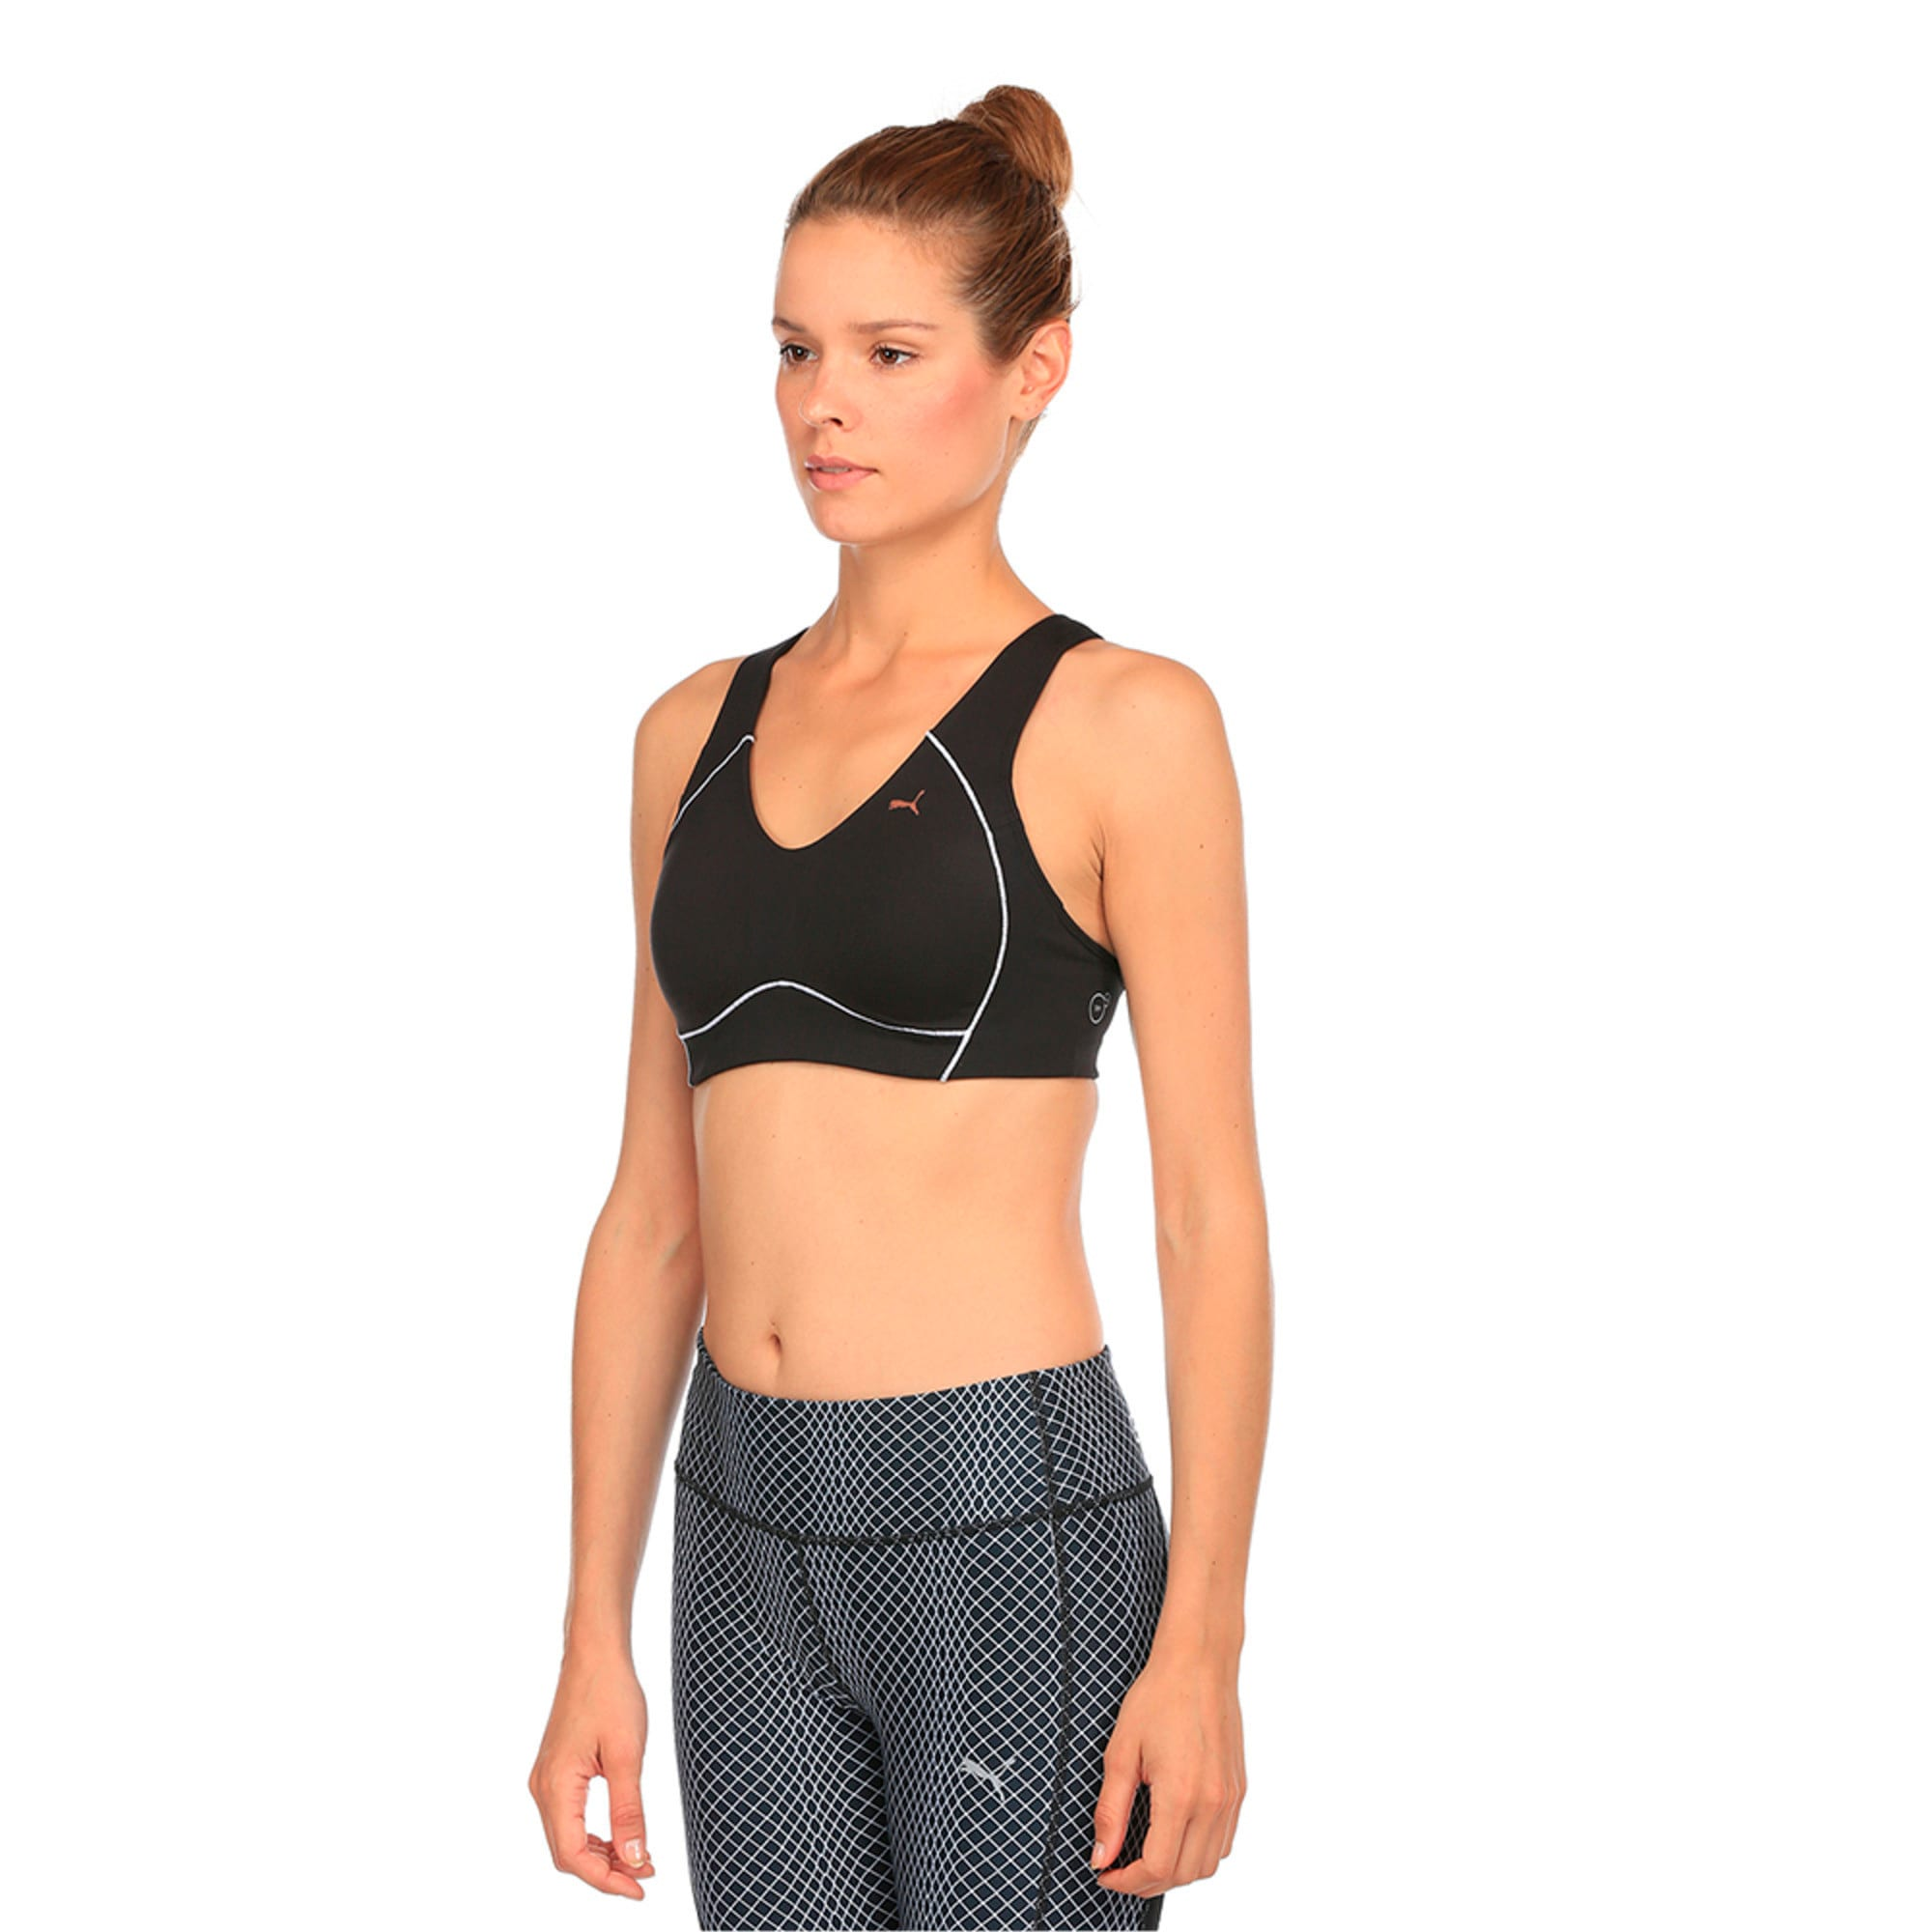 Thumbnail 1 of Training Women's PWRRUN Bra Top, Puma Black, medium-IND